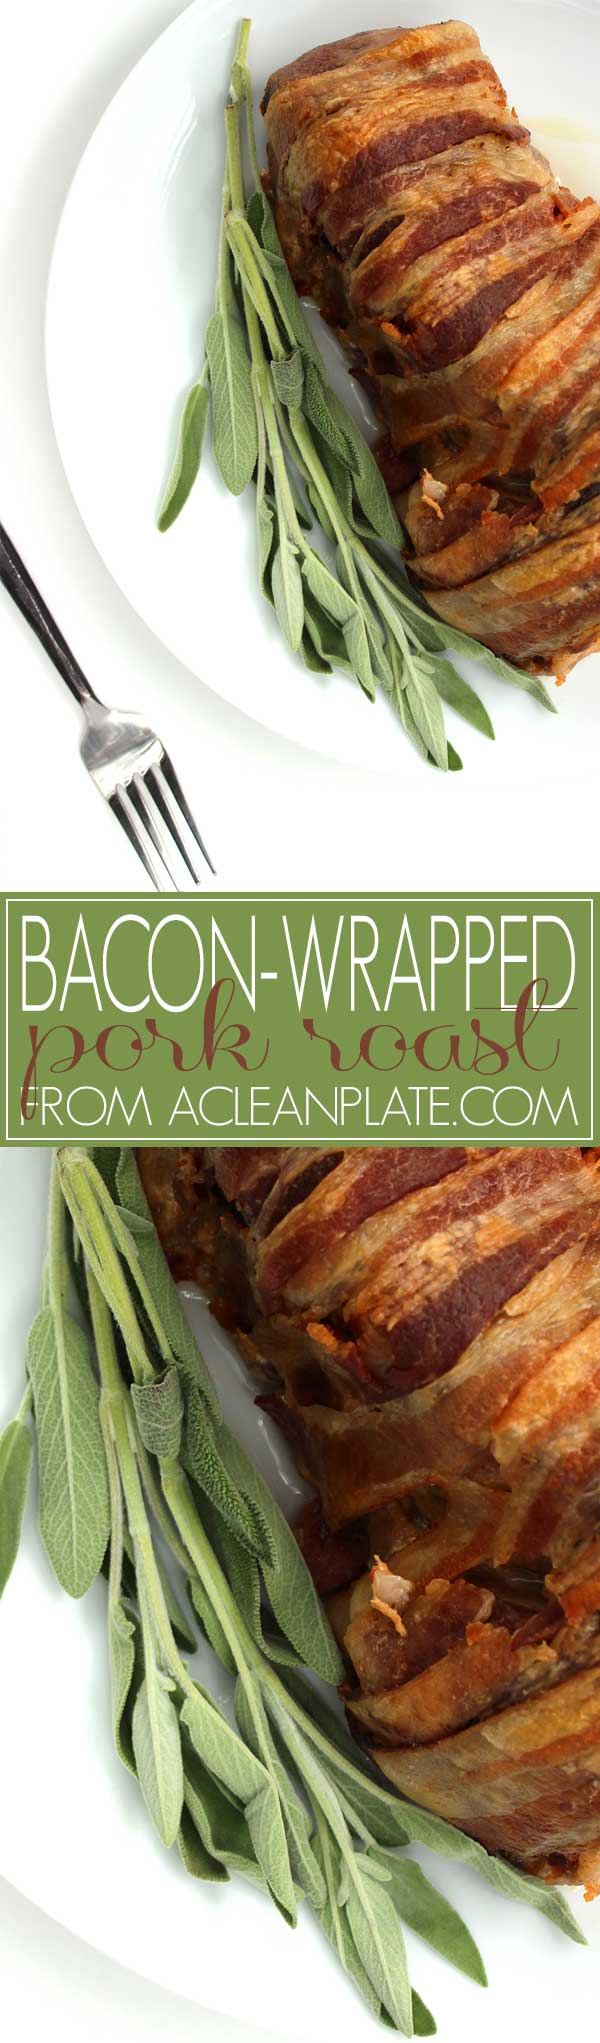 Bacon-Wrapped Pork Roast recipe from acleanplate.com